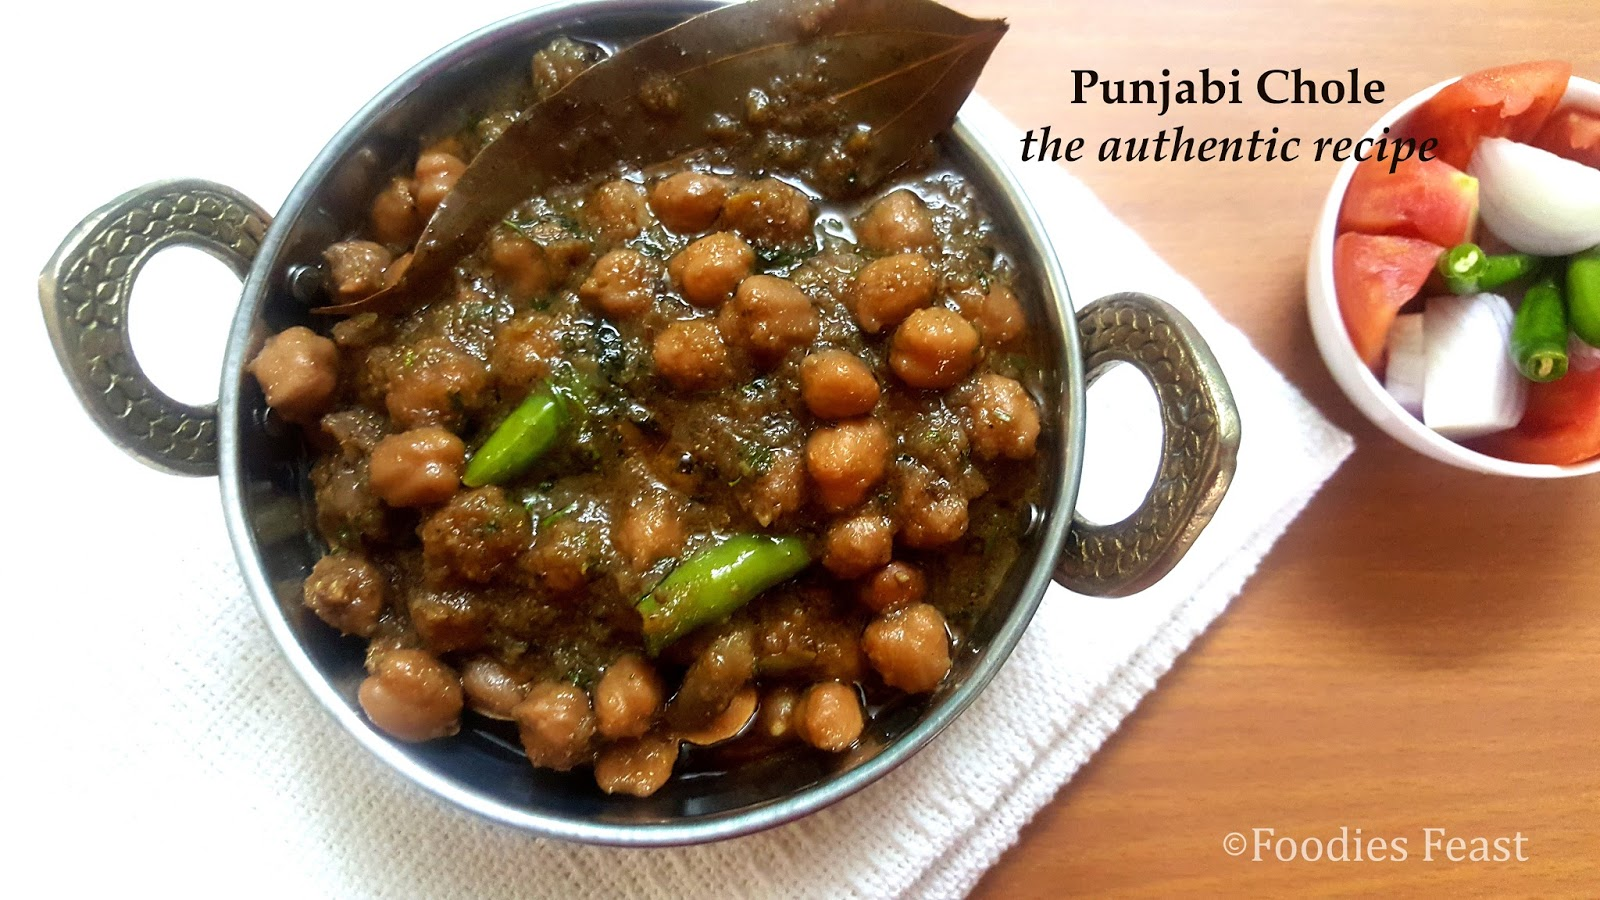 How to make the authentic punjabi chole punjabi chole for Authentic punjabi cuisine